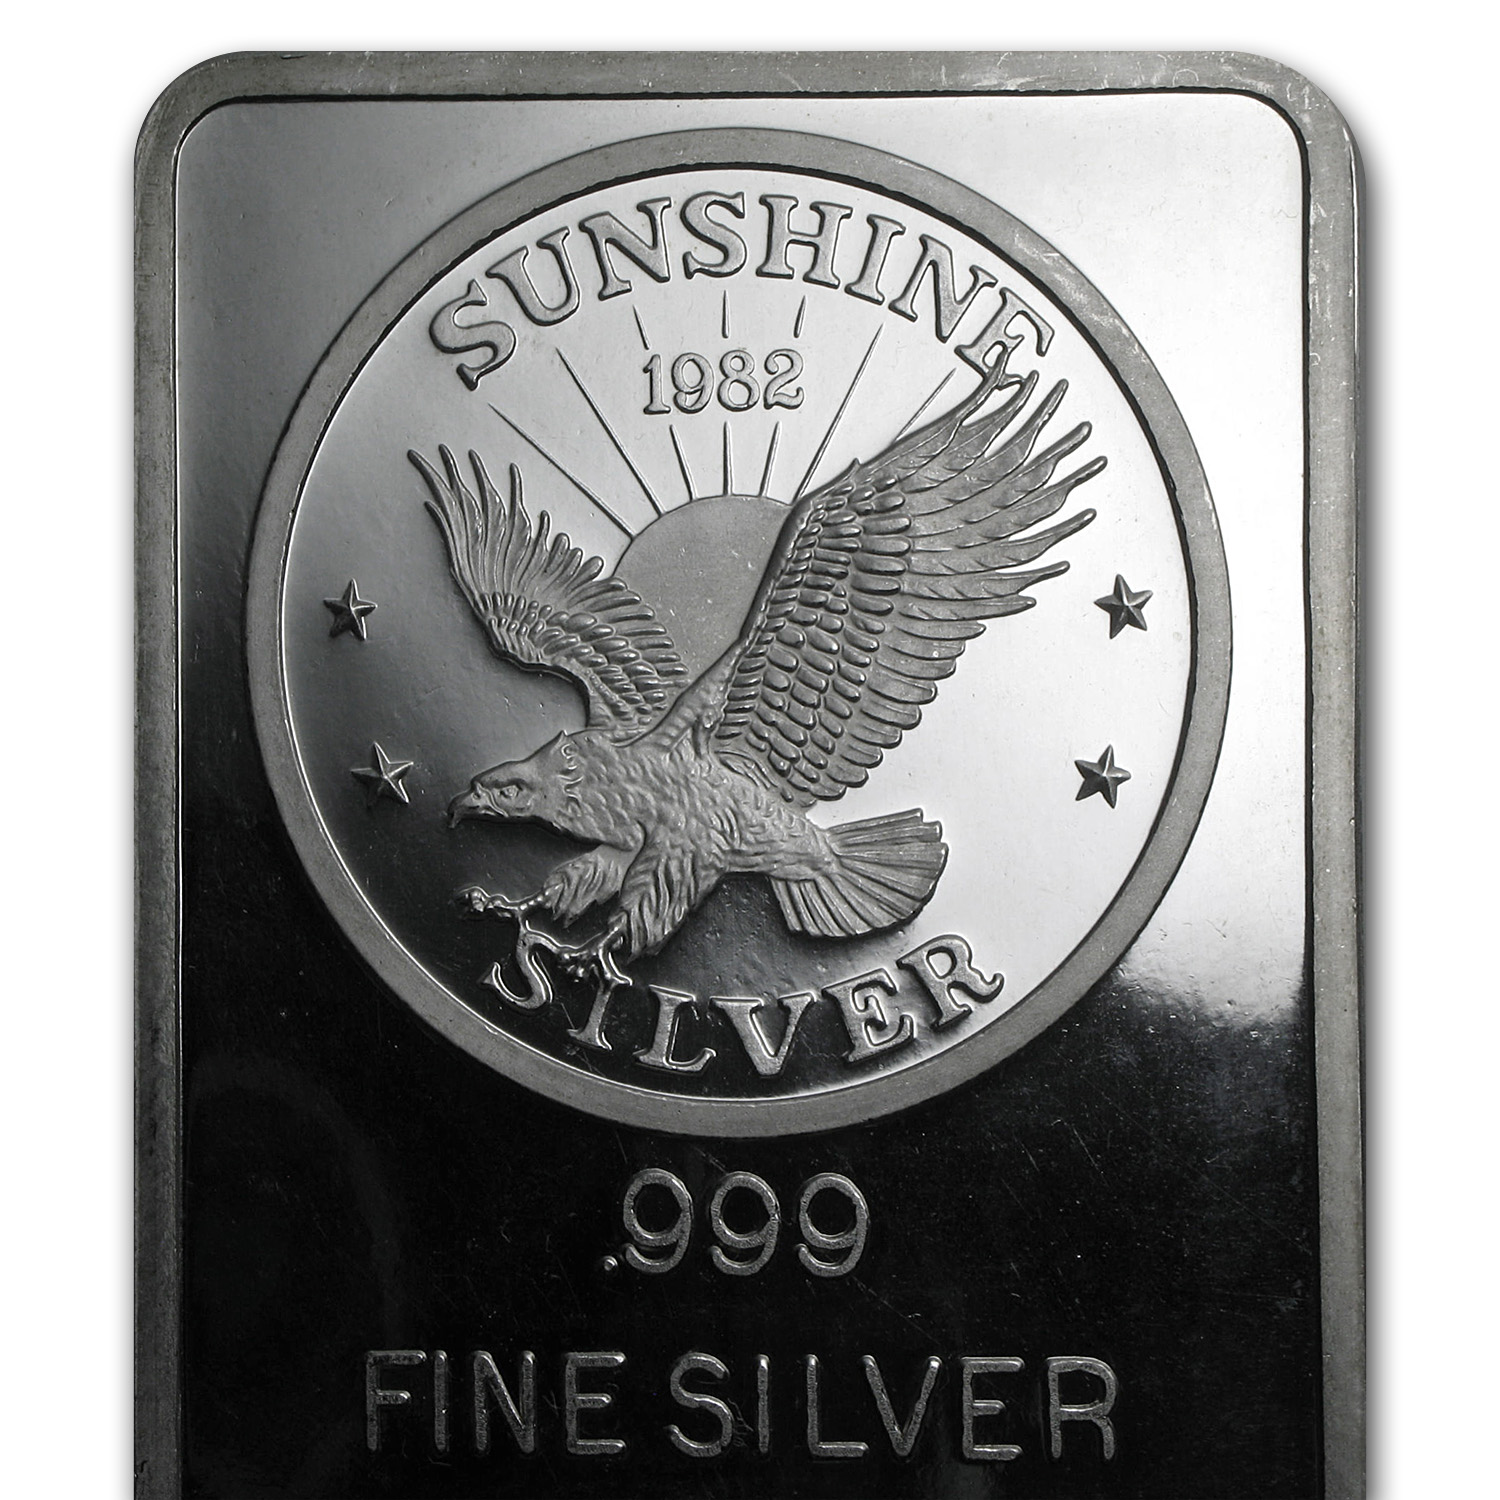 100 oz Silver Bar - Sunshine (1982/Vintage/Pressed)